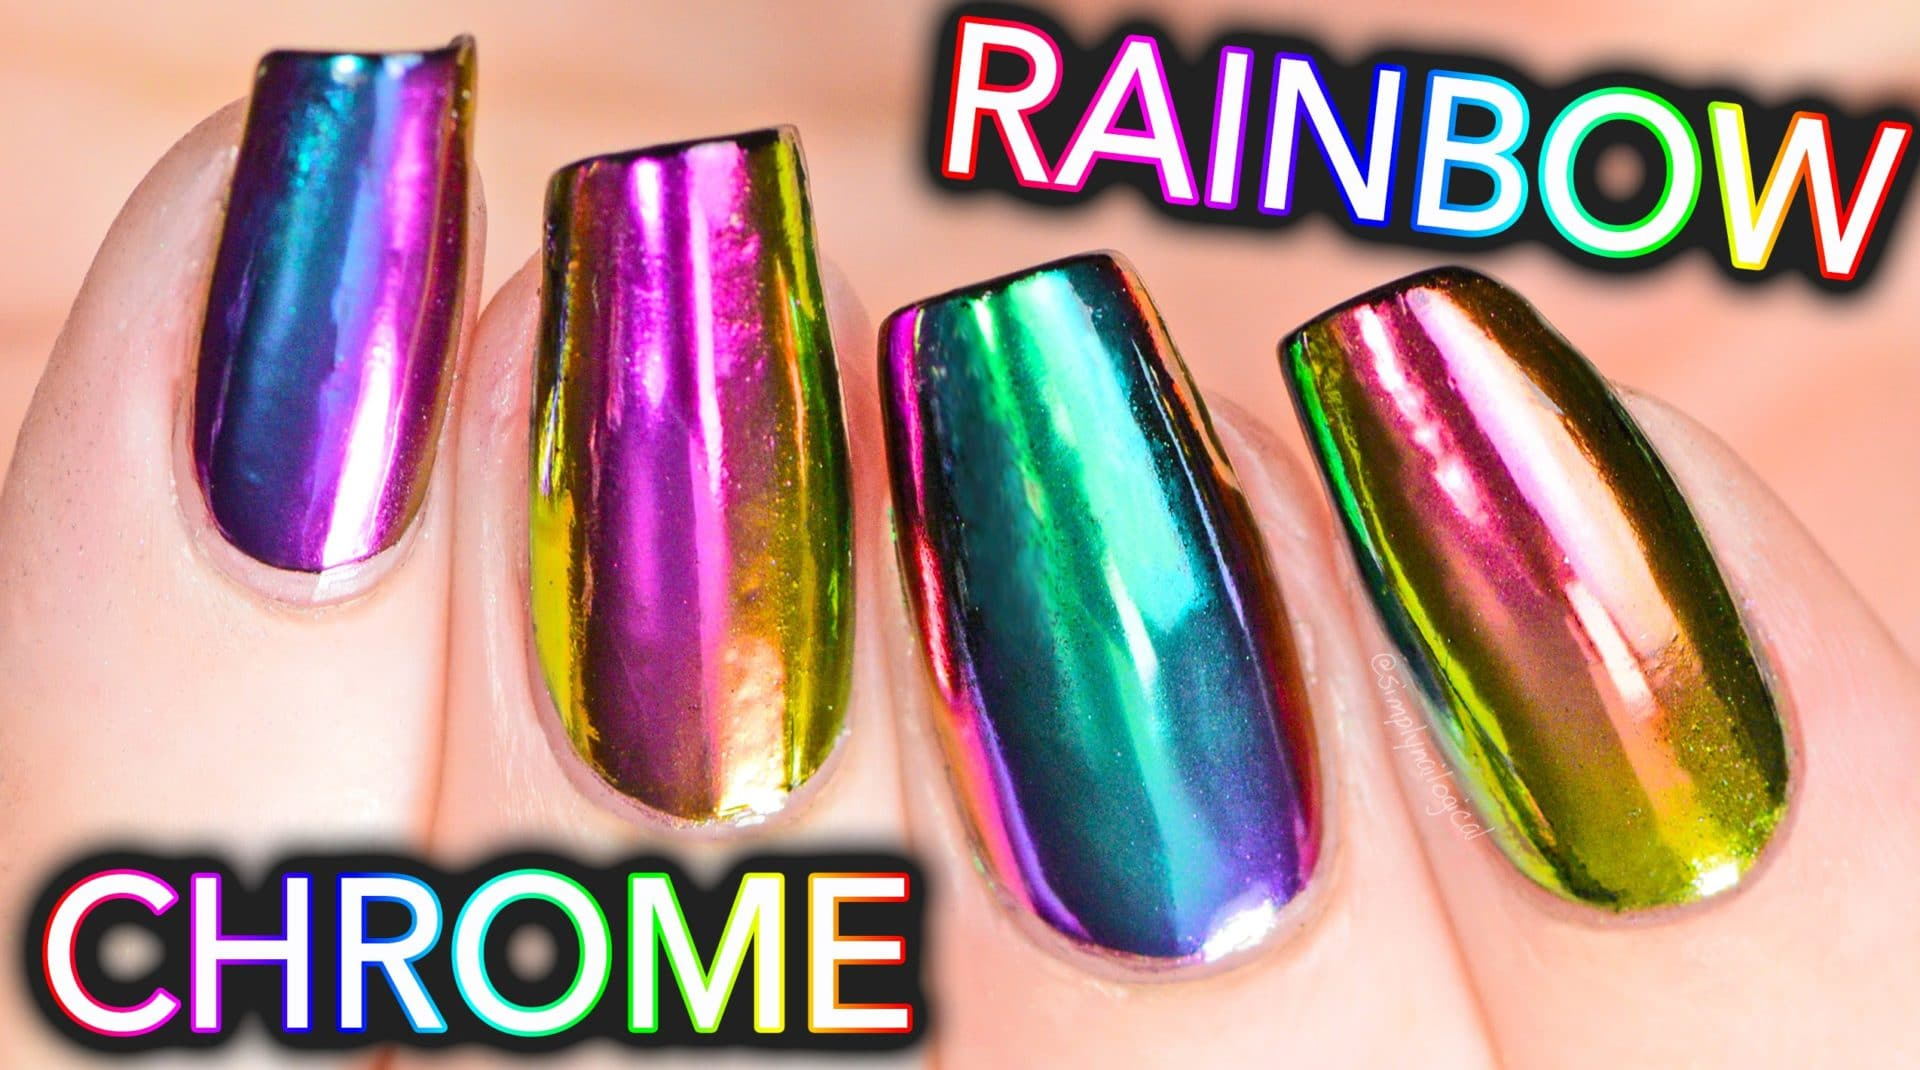 chrome nails, holographic nail polish, chrome nail powder, powder nails, iridescent nail polish, holographic nail powder, holo nails, holographic nail powder, holographic paint, hologram nails, chrome powder nails, color club hologram, holo powder, pink holographic nails, holographic nails near me, black holographic nails, white holographic nails, holographic gel nail polish, holographic nail designs, holographic glitter nails, holographic nail foil